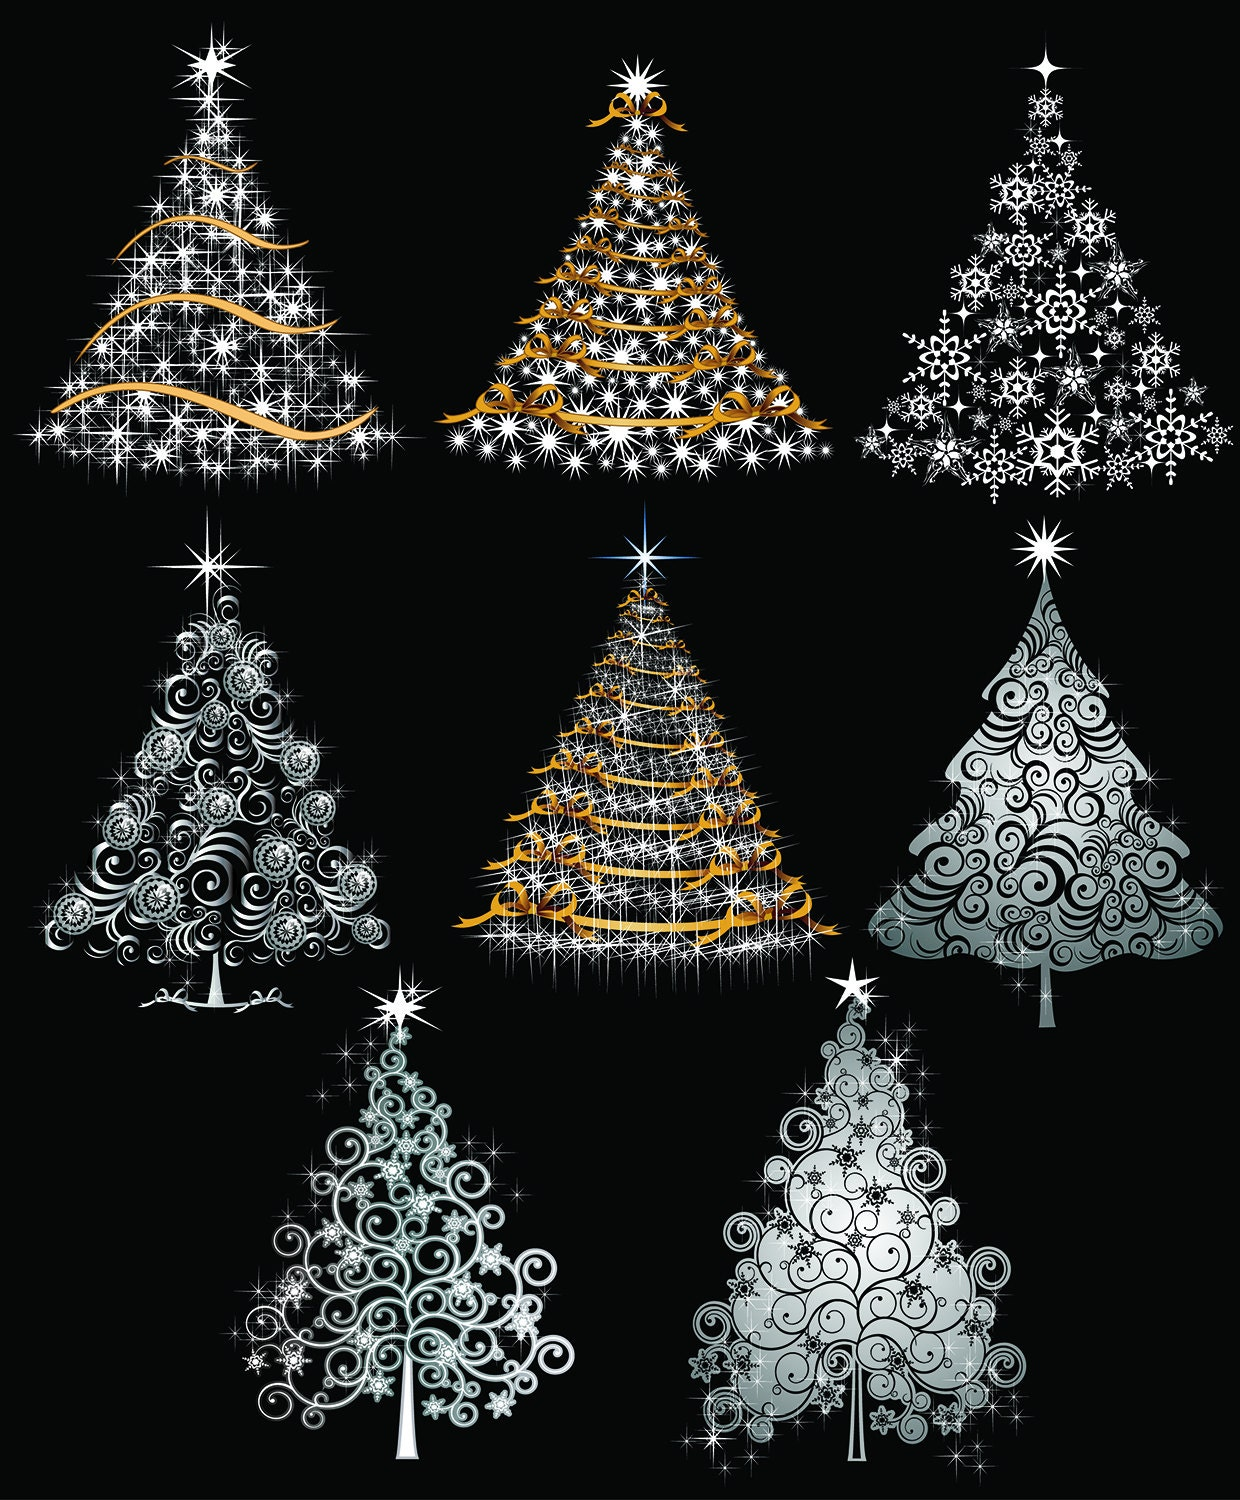 digital art christmas tree - photo #25